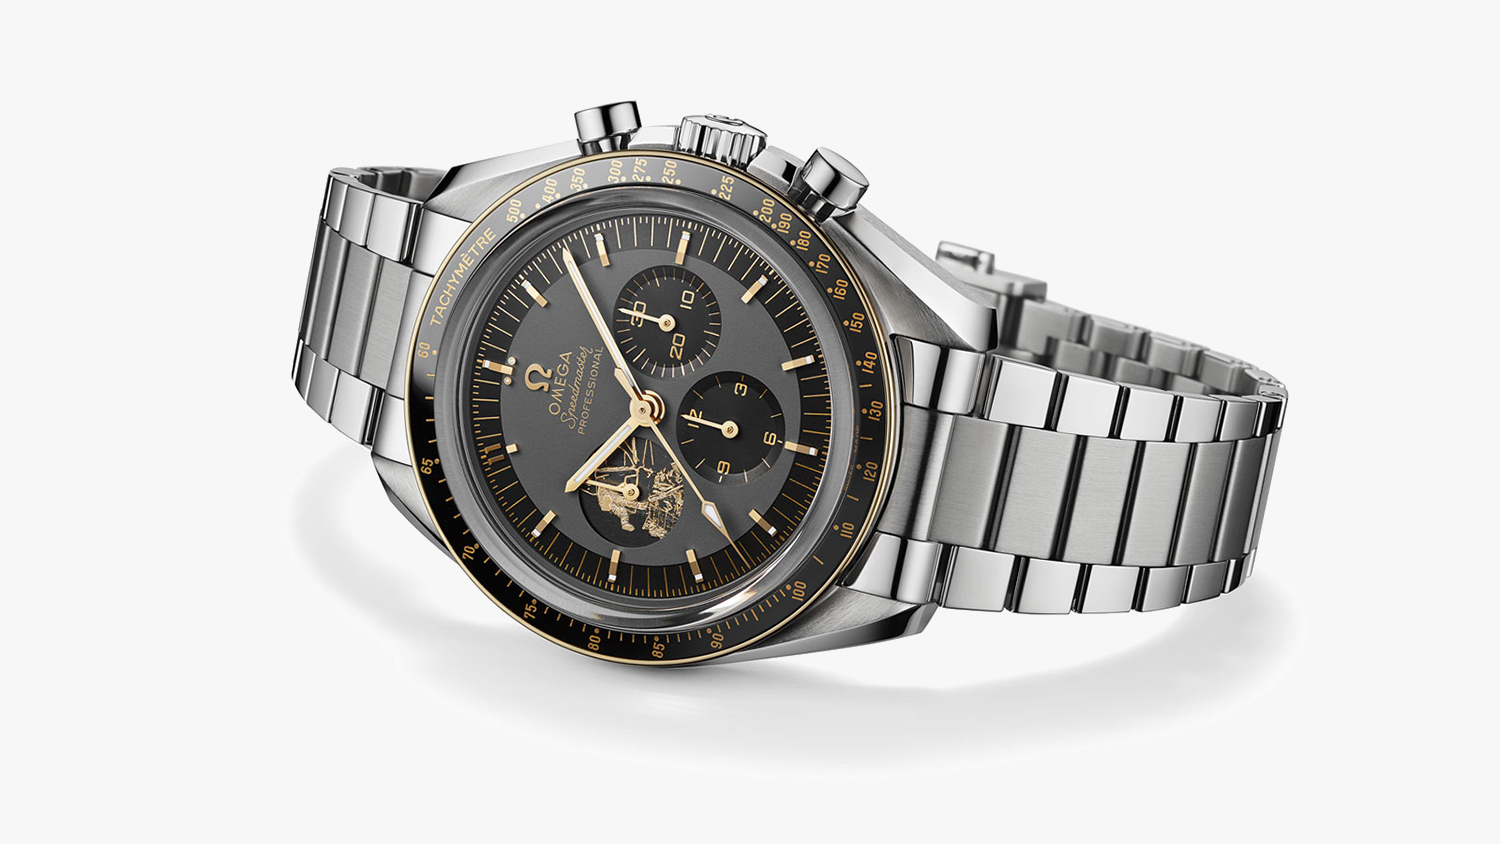 The Omega Apollo 11 Moonwatch - It's Rocket Science.